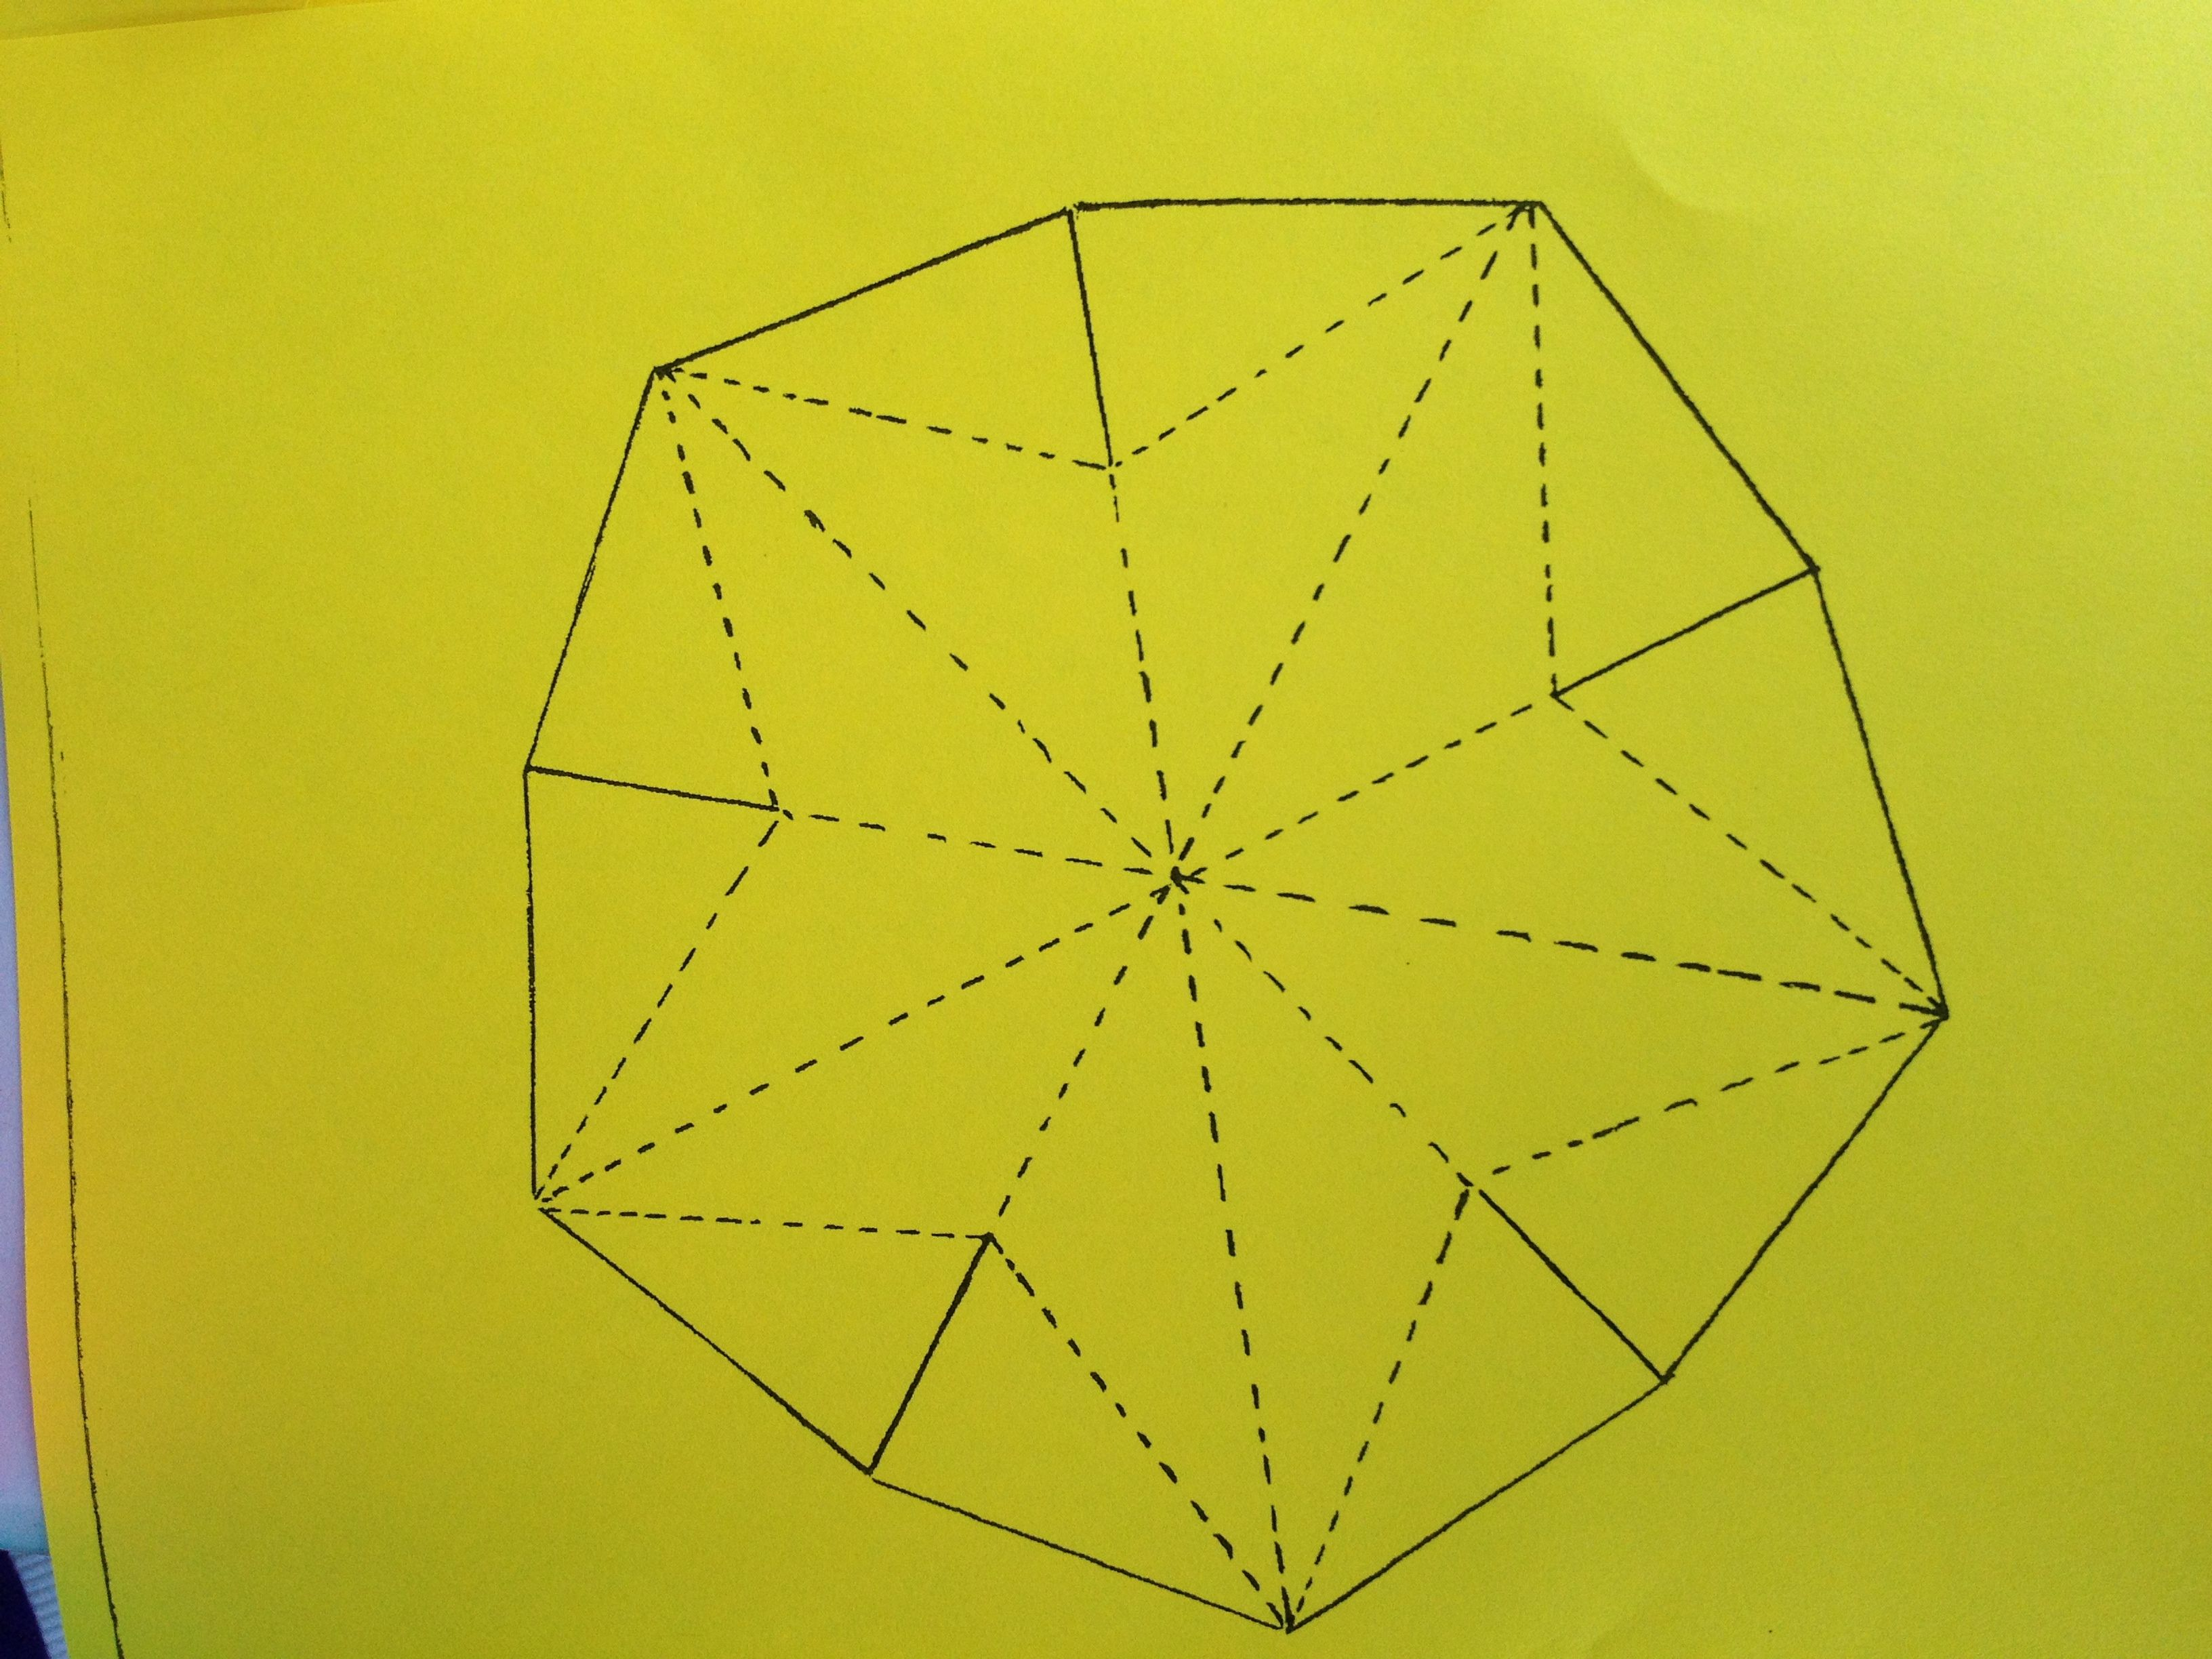 Filipino parol for sale in america - This Is The Pattern To Make The Parol Or Star Paper Lantern Cut The